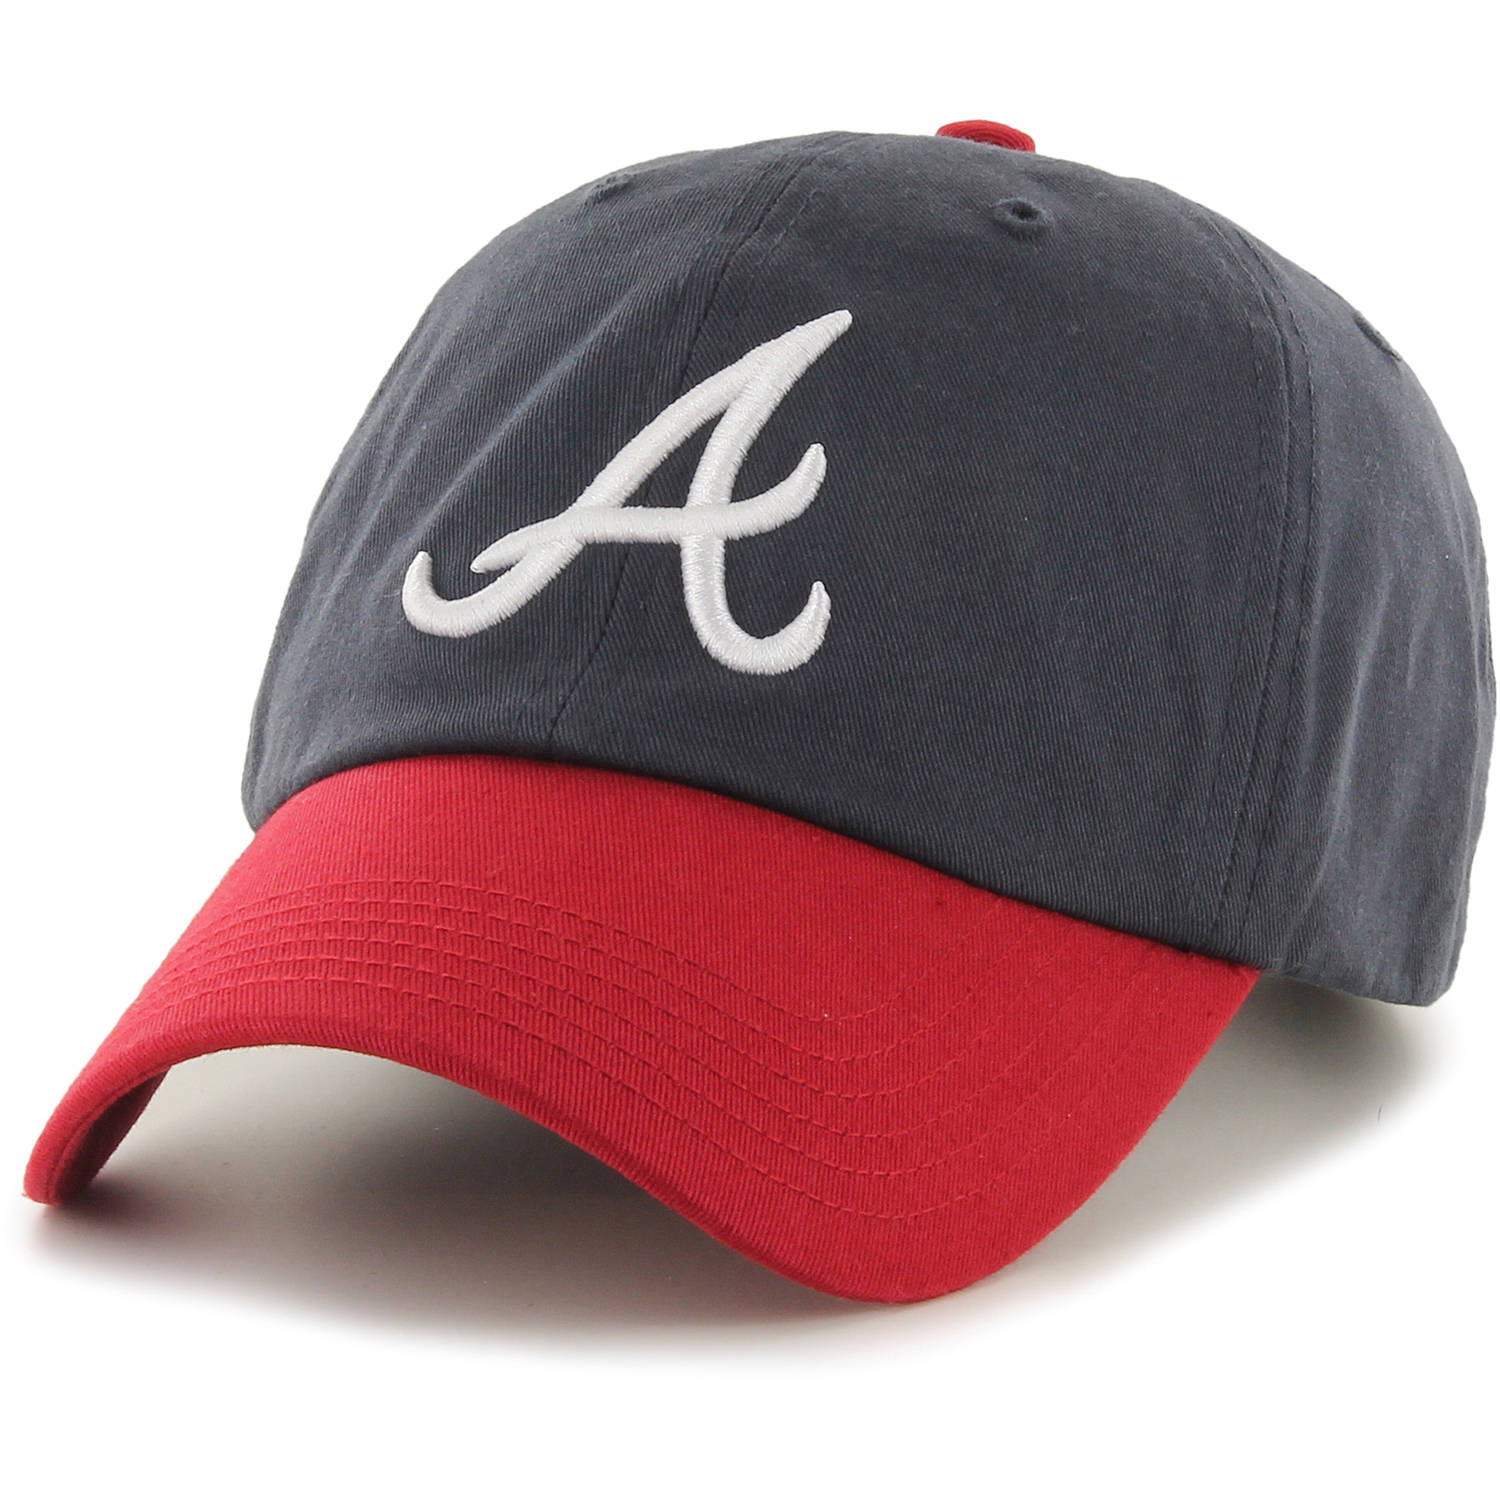 MLB Atlanta Braves Clean Up Cap / Hat by Fan Favorite